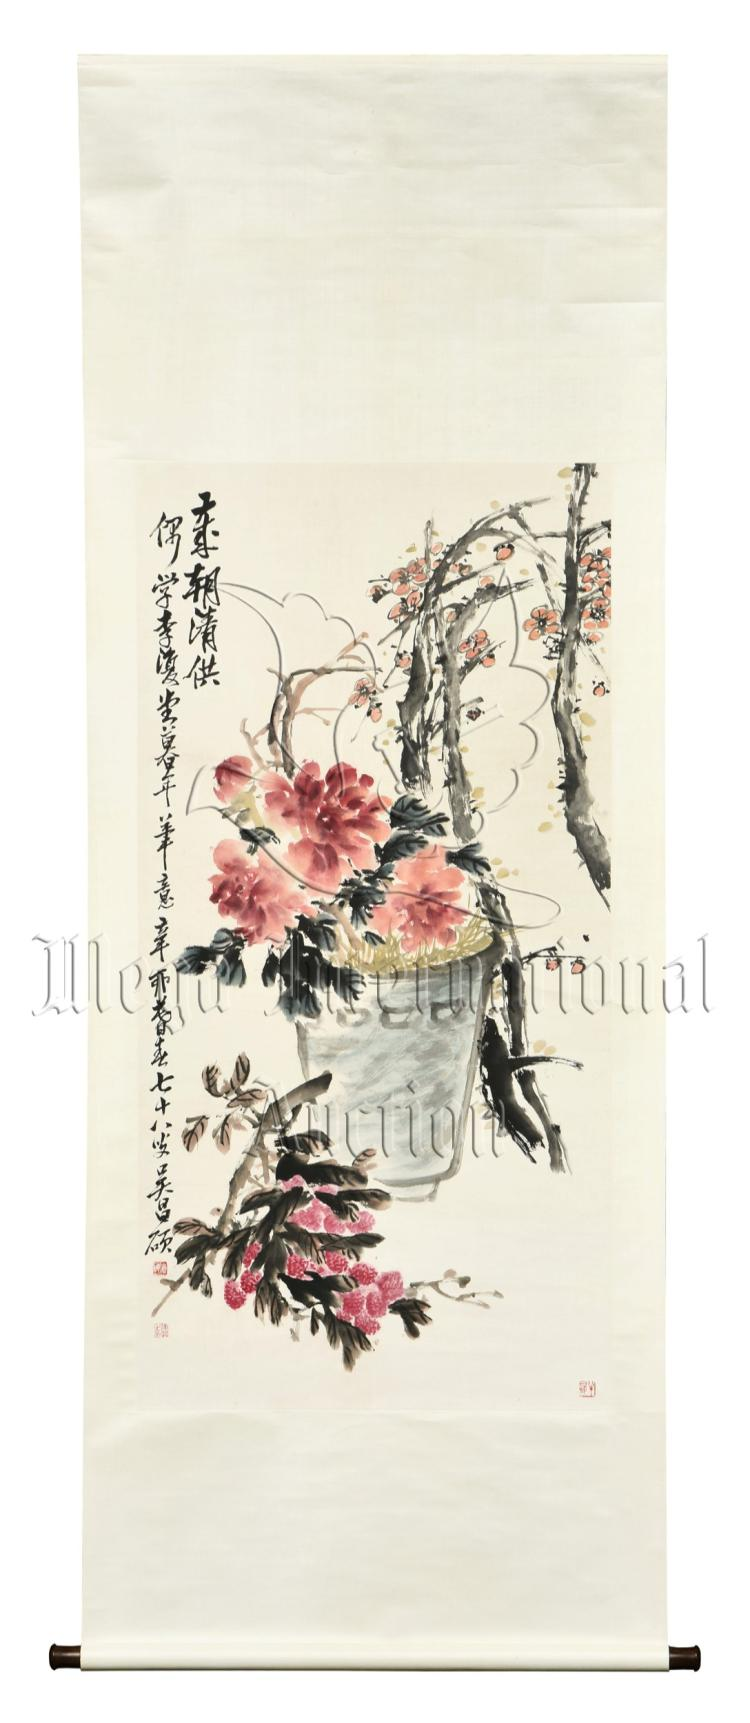 WU CHANGSHUO: INK AND COLOR PAINTING 'PEONY FLOWERS'